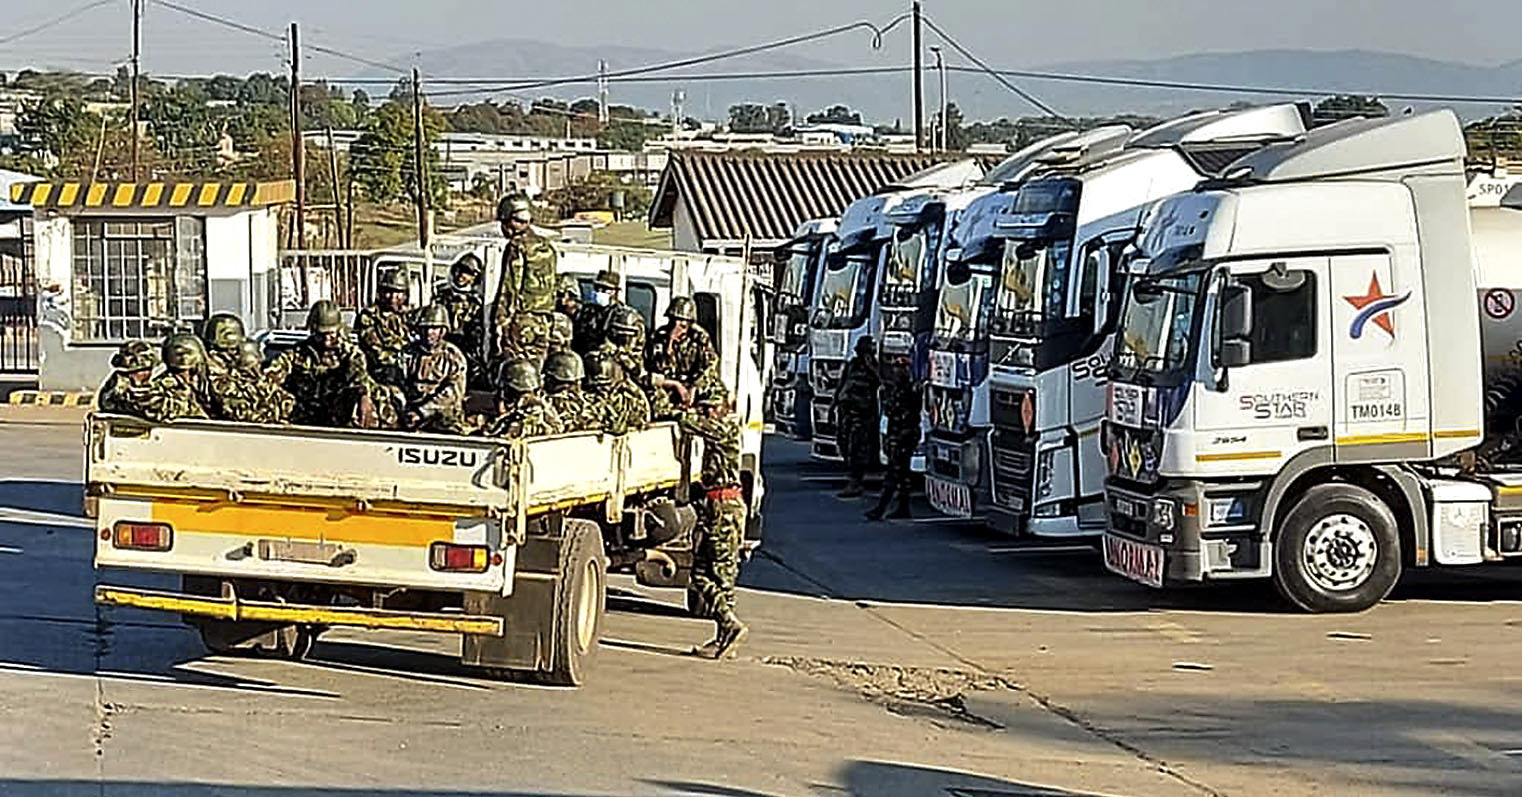 You are currently viewing New evidence confirms claims of murder and torture by Eswatini military and police